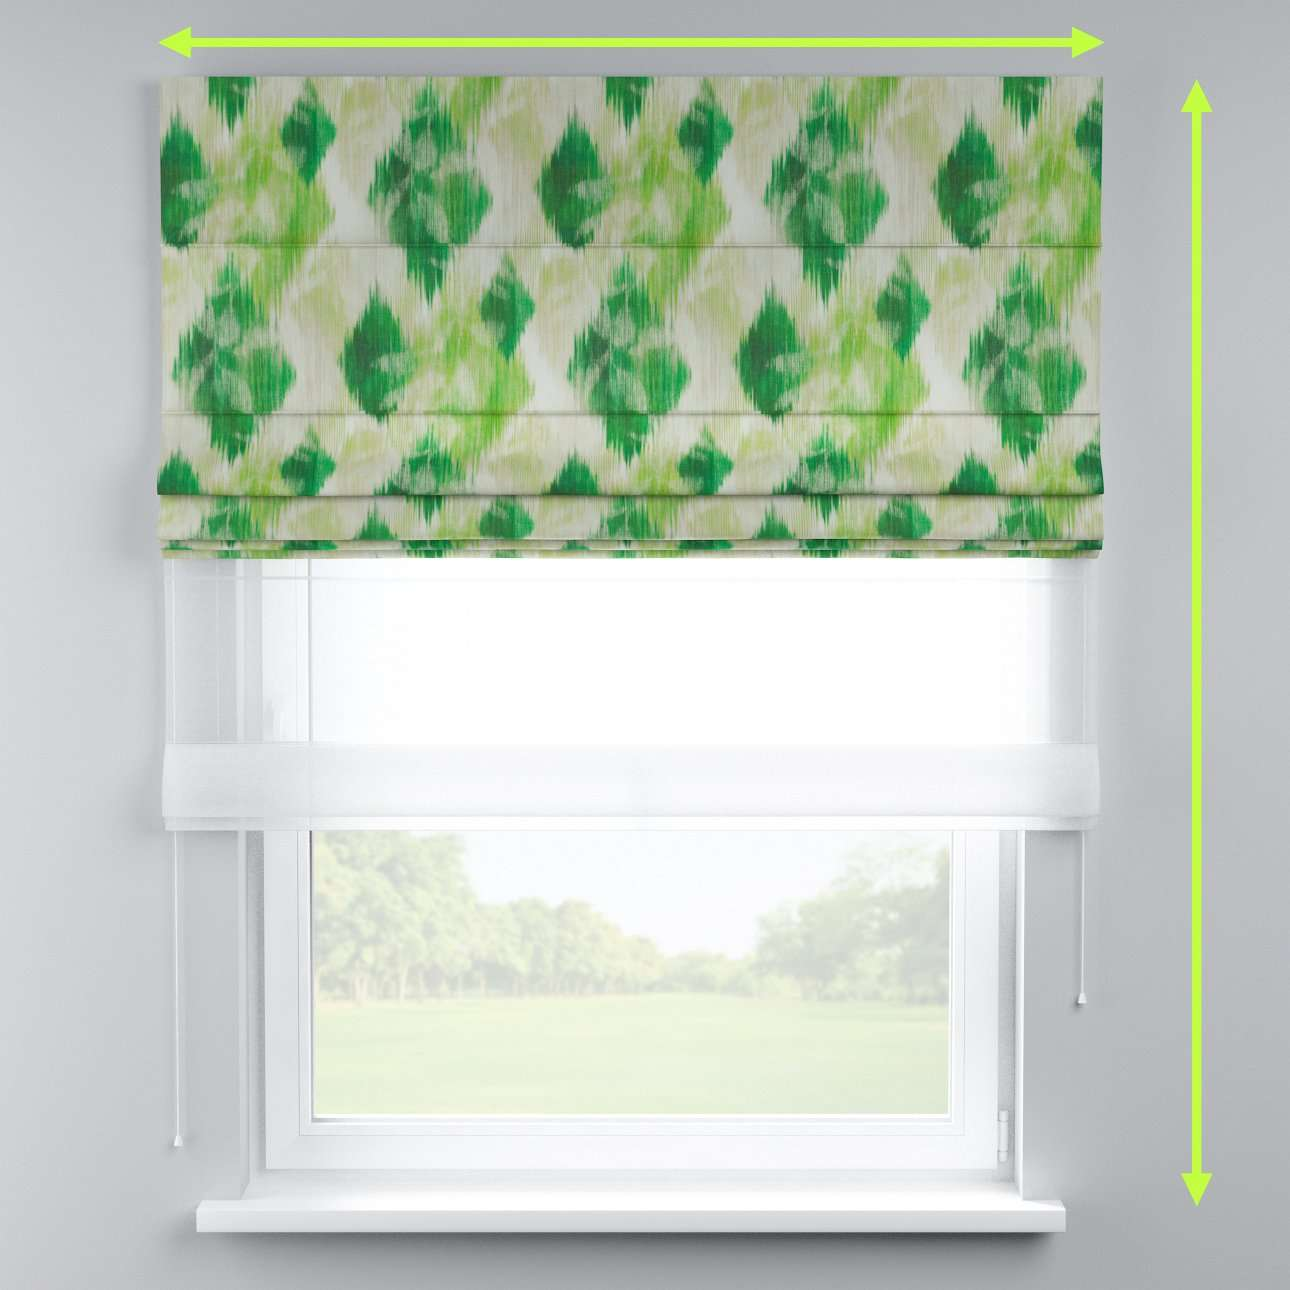 Voile and fabric roman blind (DUO II) in collection Aquarelle, fabric: 140-70